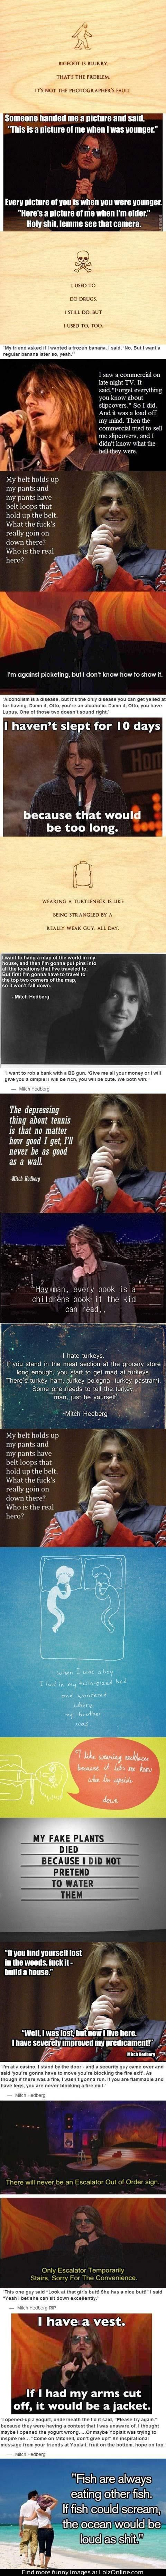 Love Mitch Hedberg